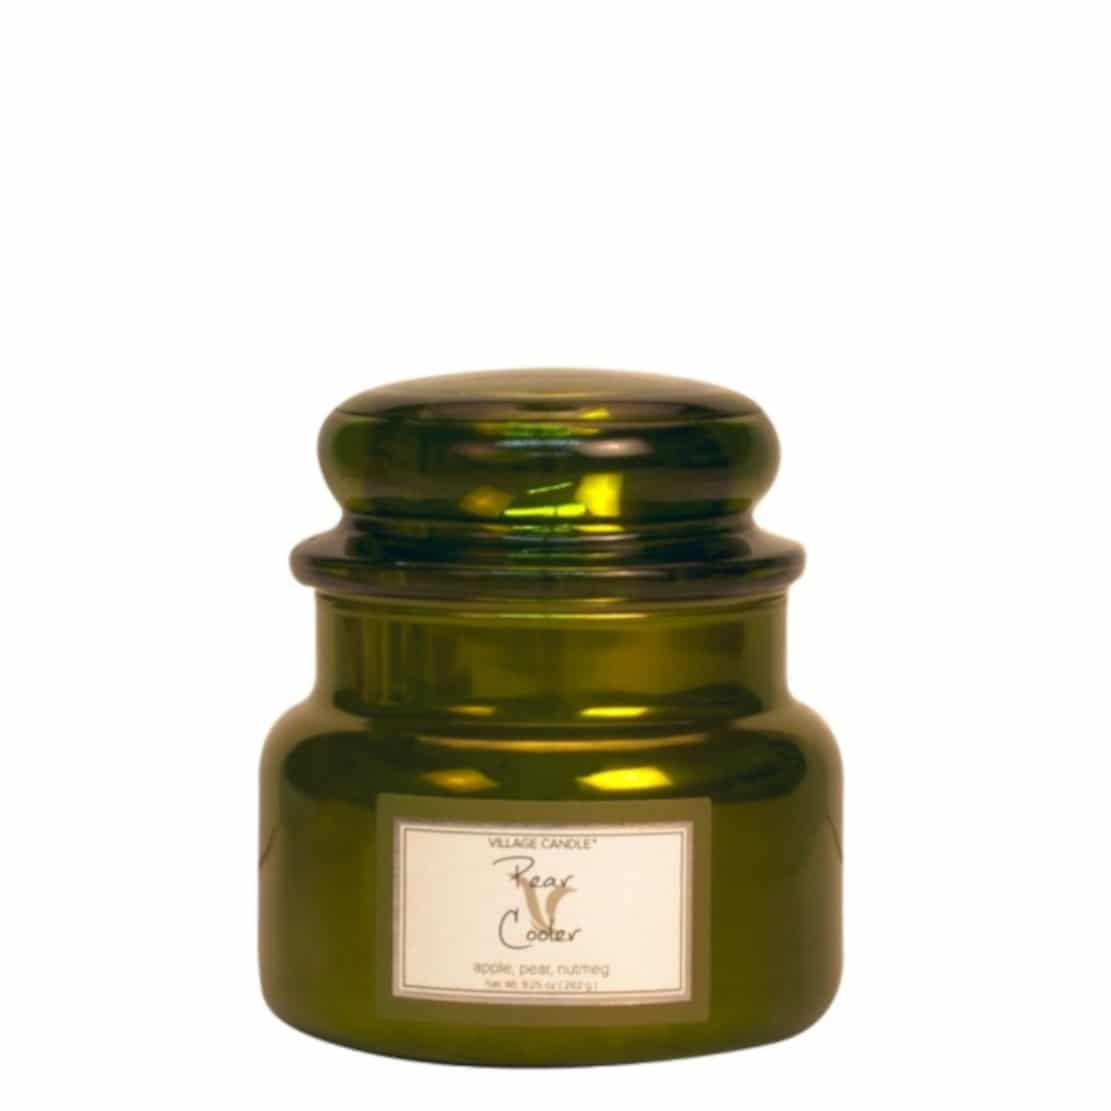 Village Pear Cooler 11oz Small Jar Candle